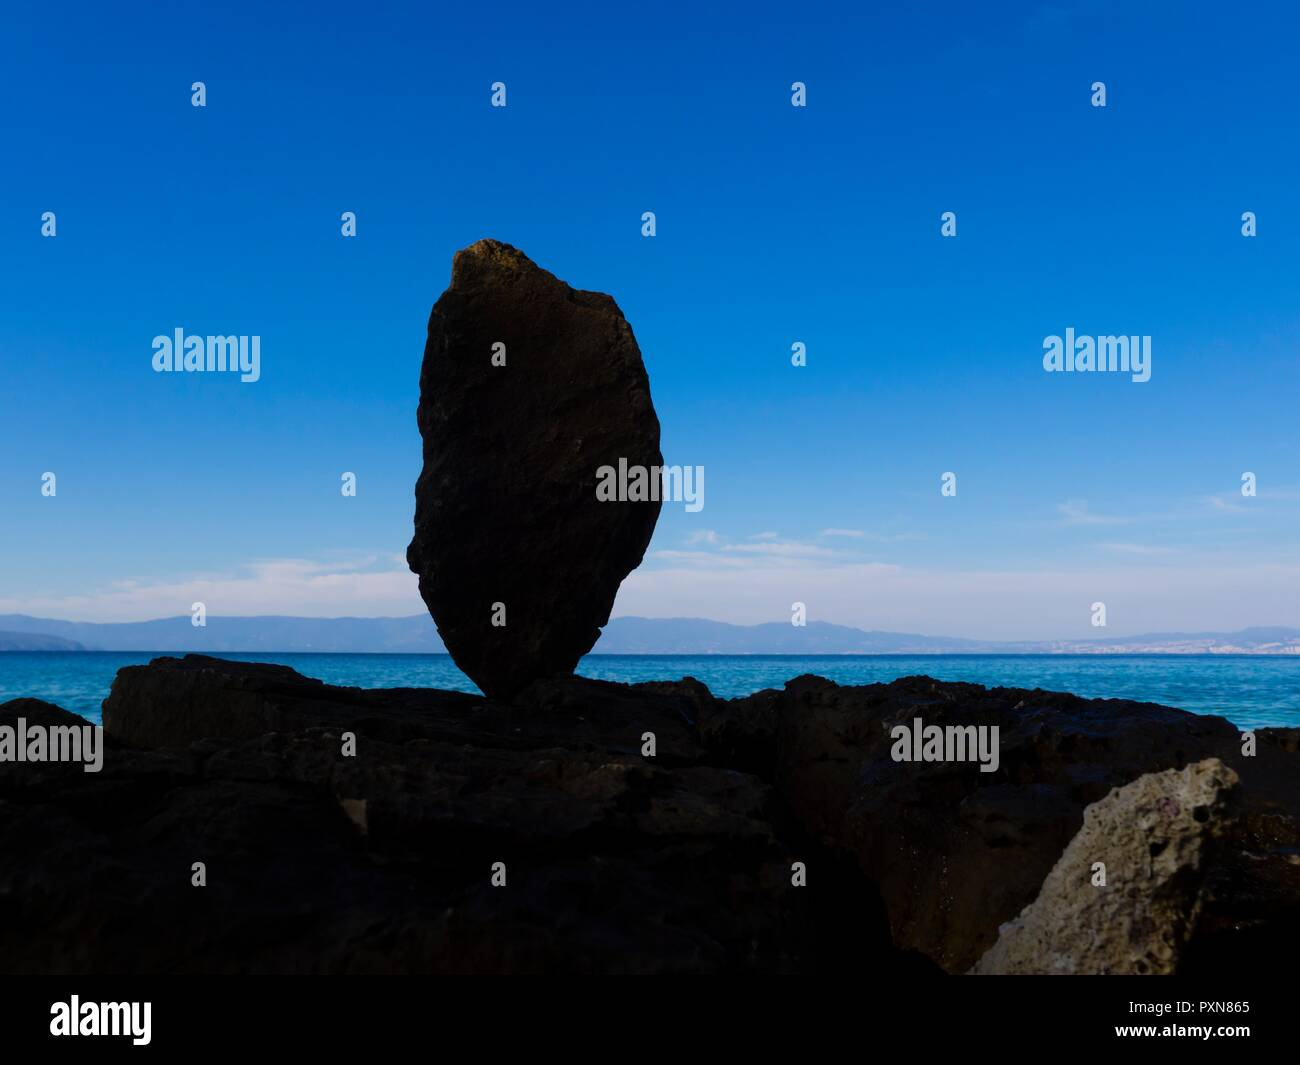 Single rock tip-toeing on seaside against clear Blue sky and calm sea horizon - Stock Image